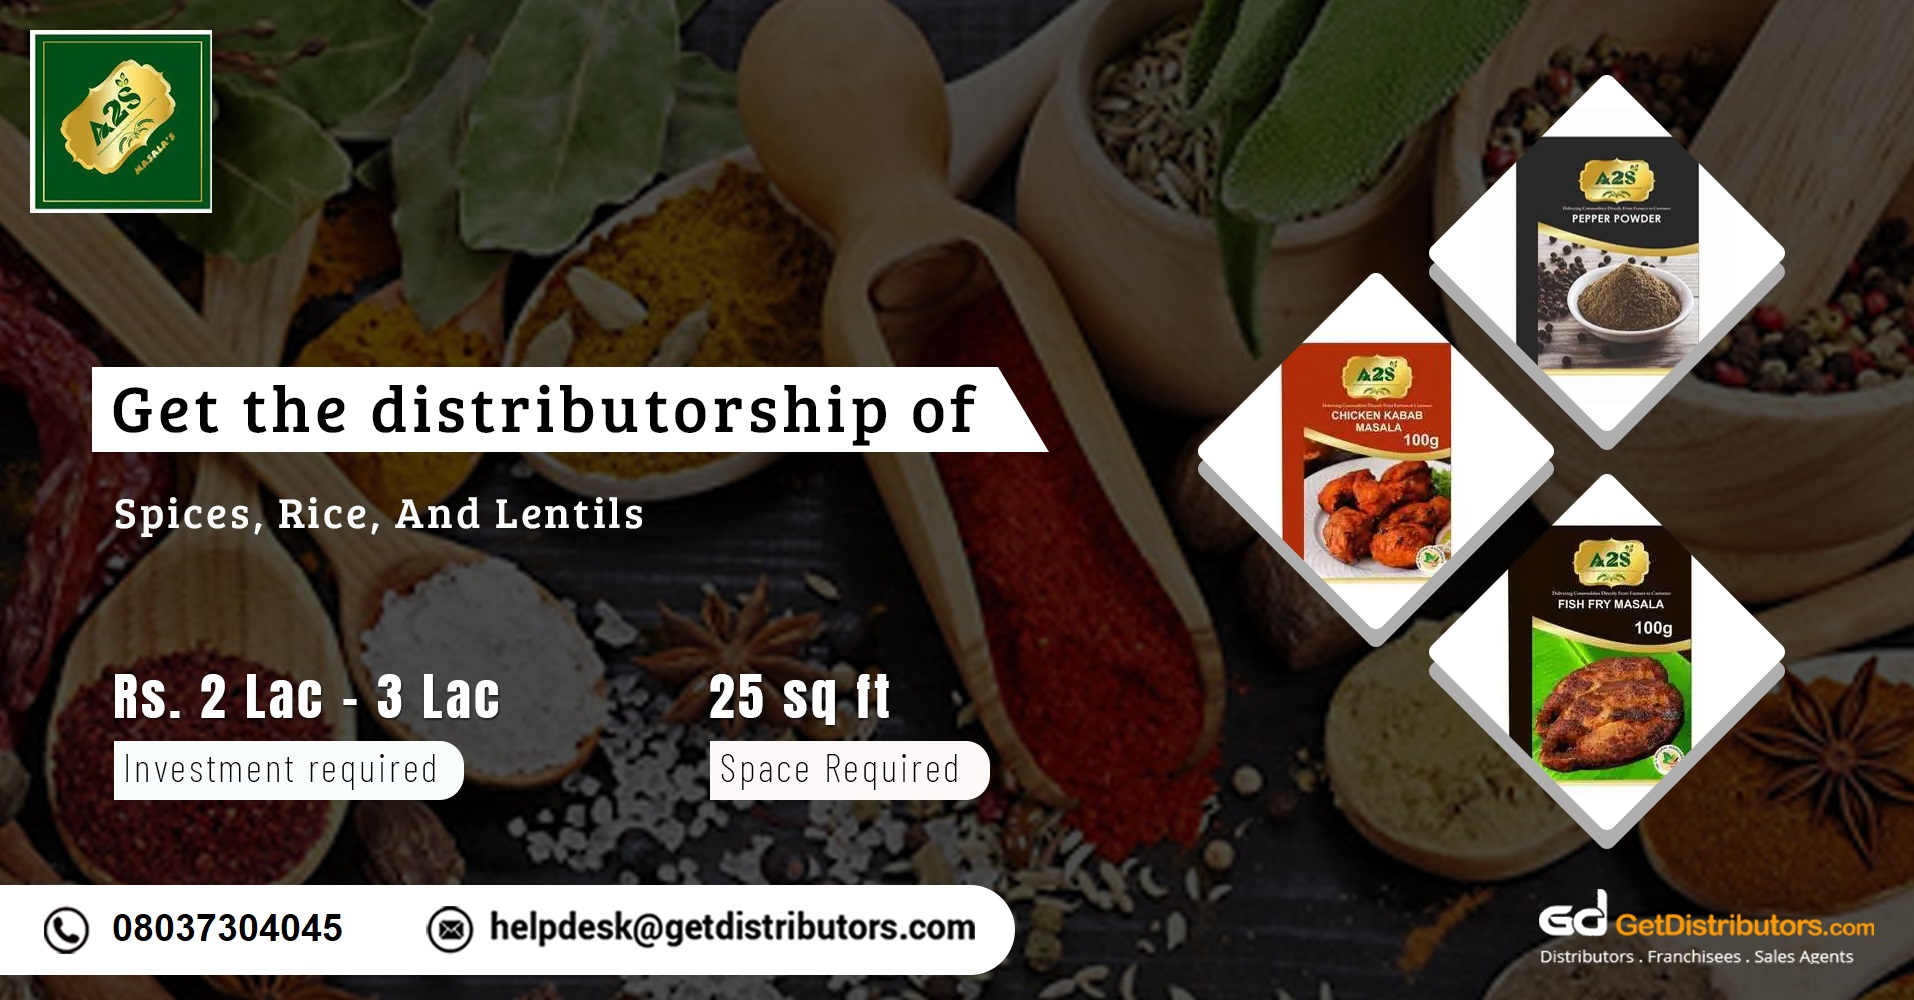 Presenting high-quality spices, rice, and lentils for distribution